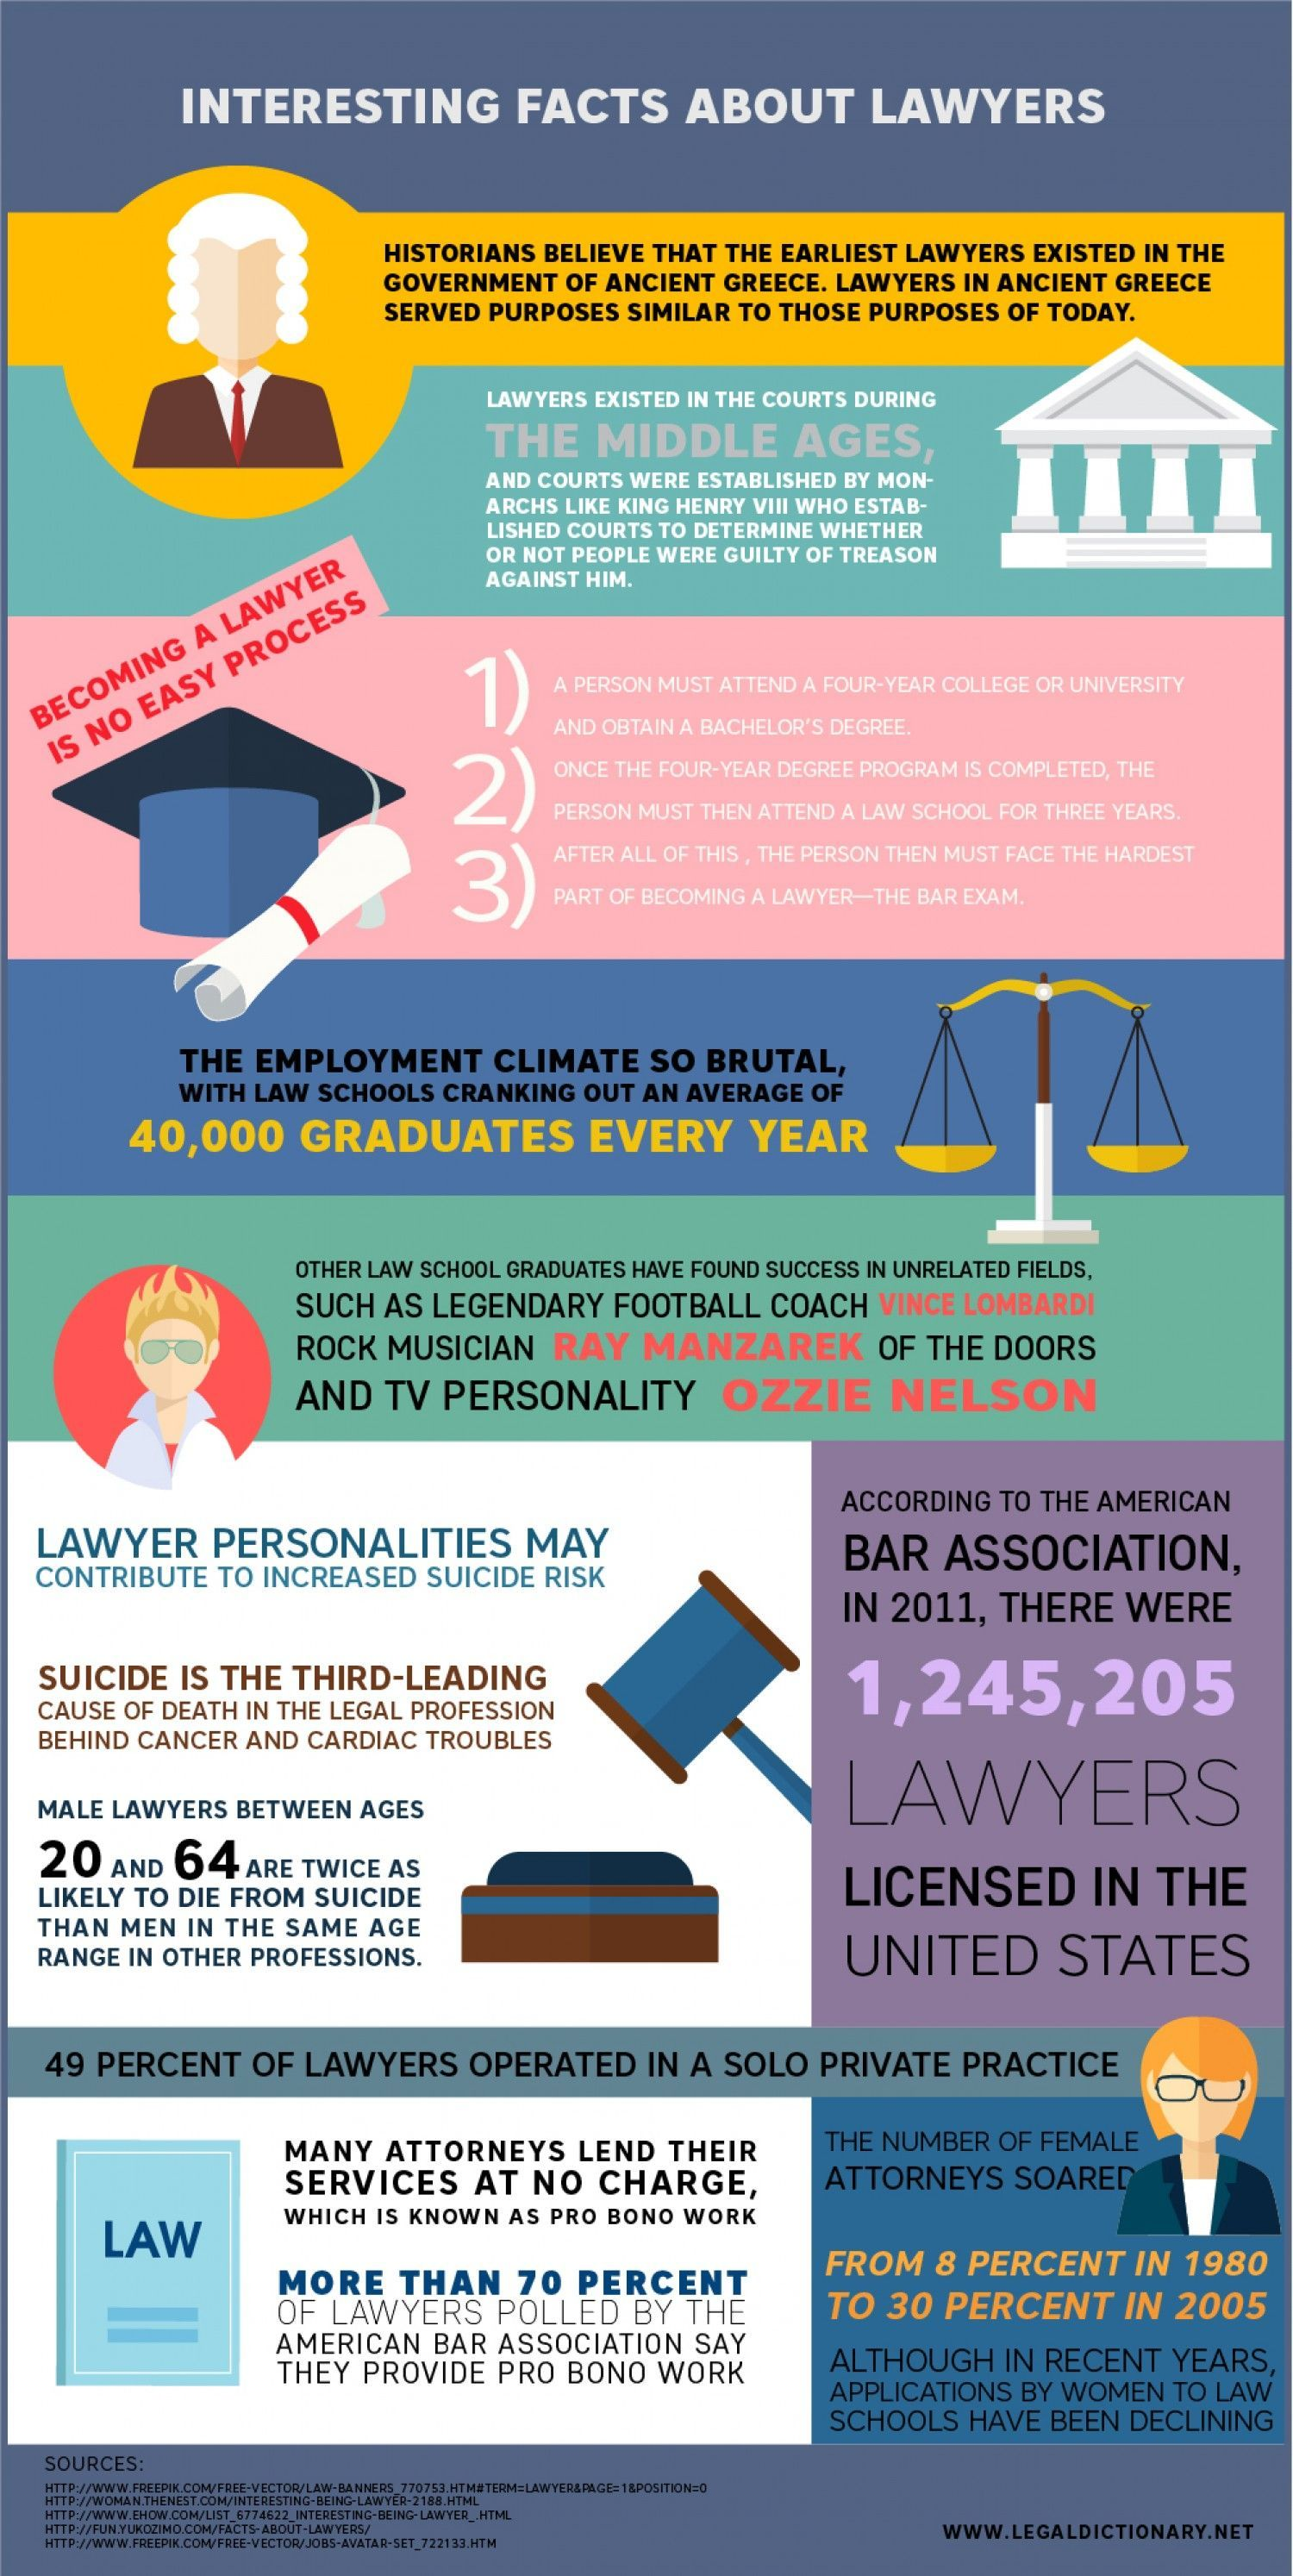 Interesting Facts About Lawyers Visual Ly 49 Of Lawyers Have